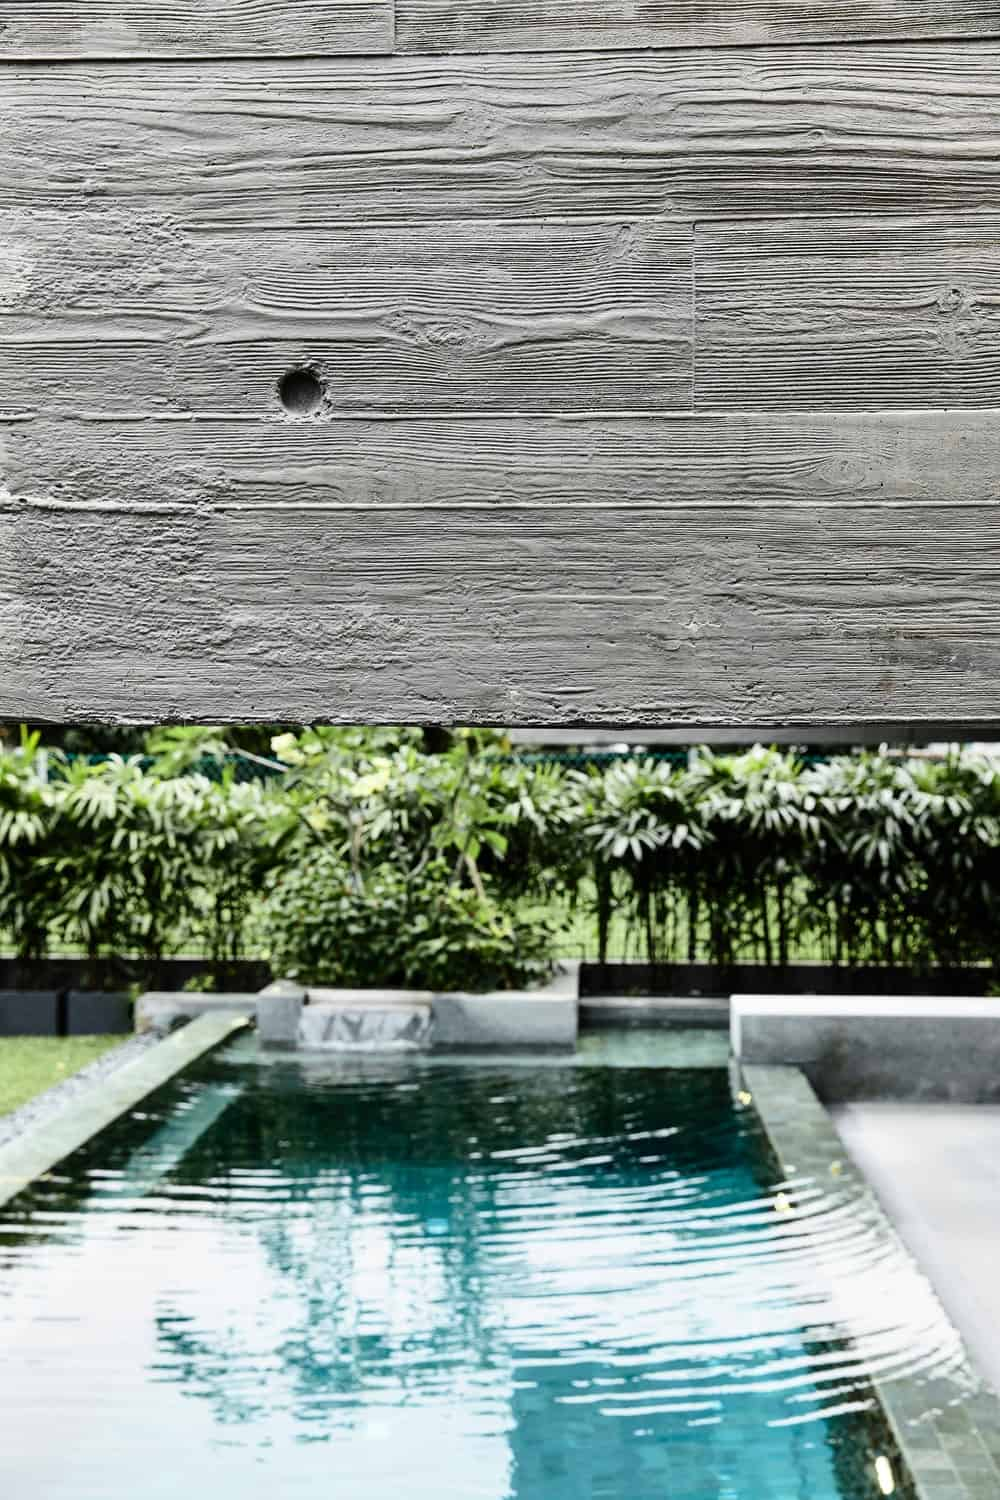 This is acloser look at one of the exterior walls revealing its textured gray surface with the pool area in the background.